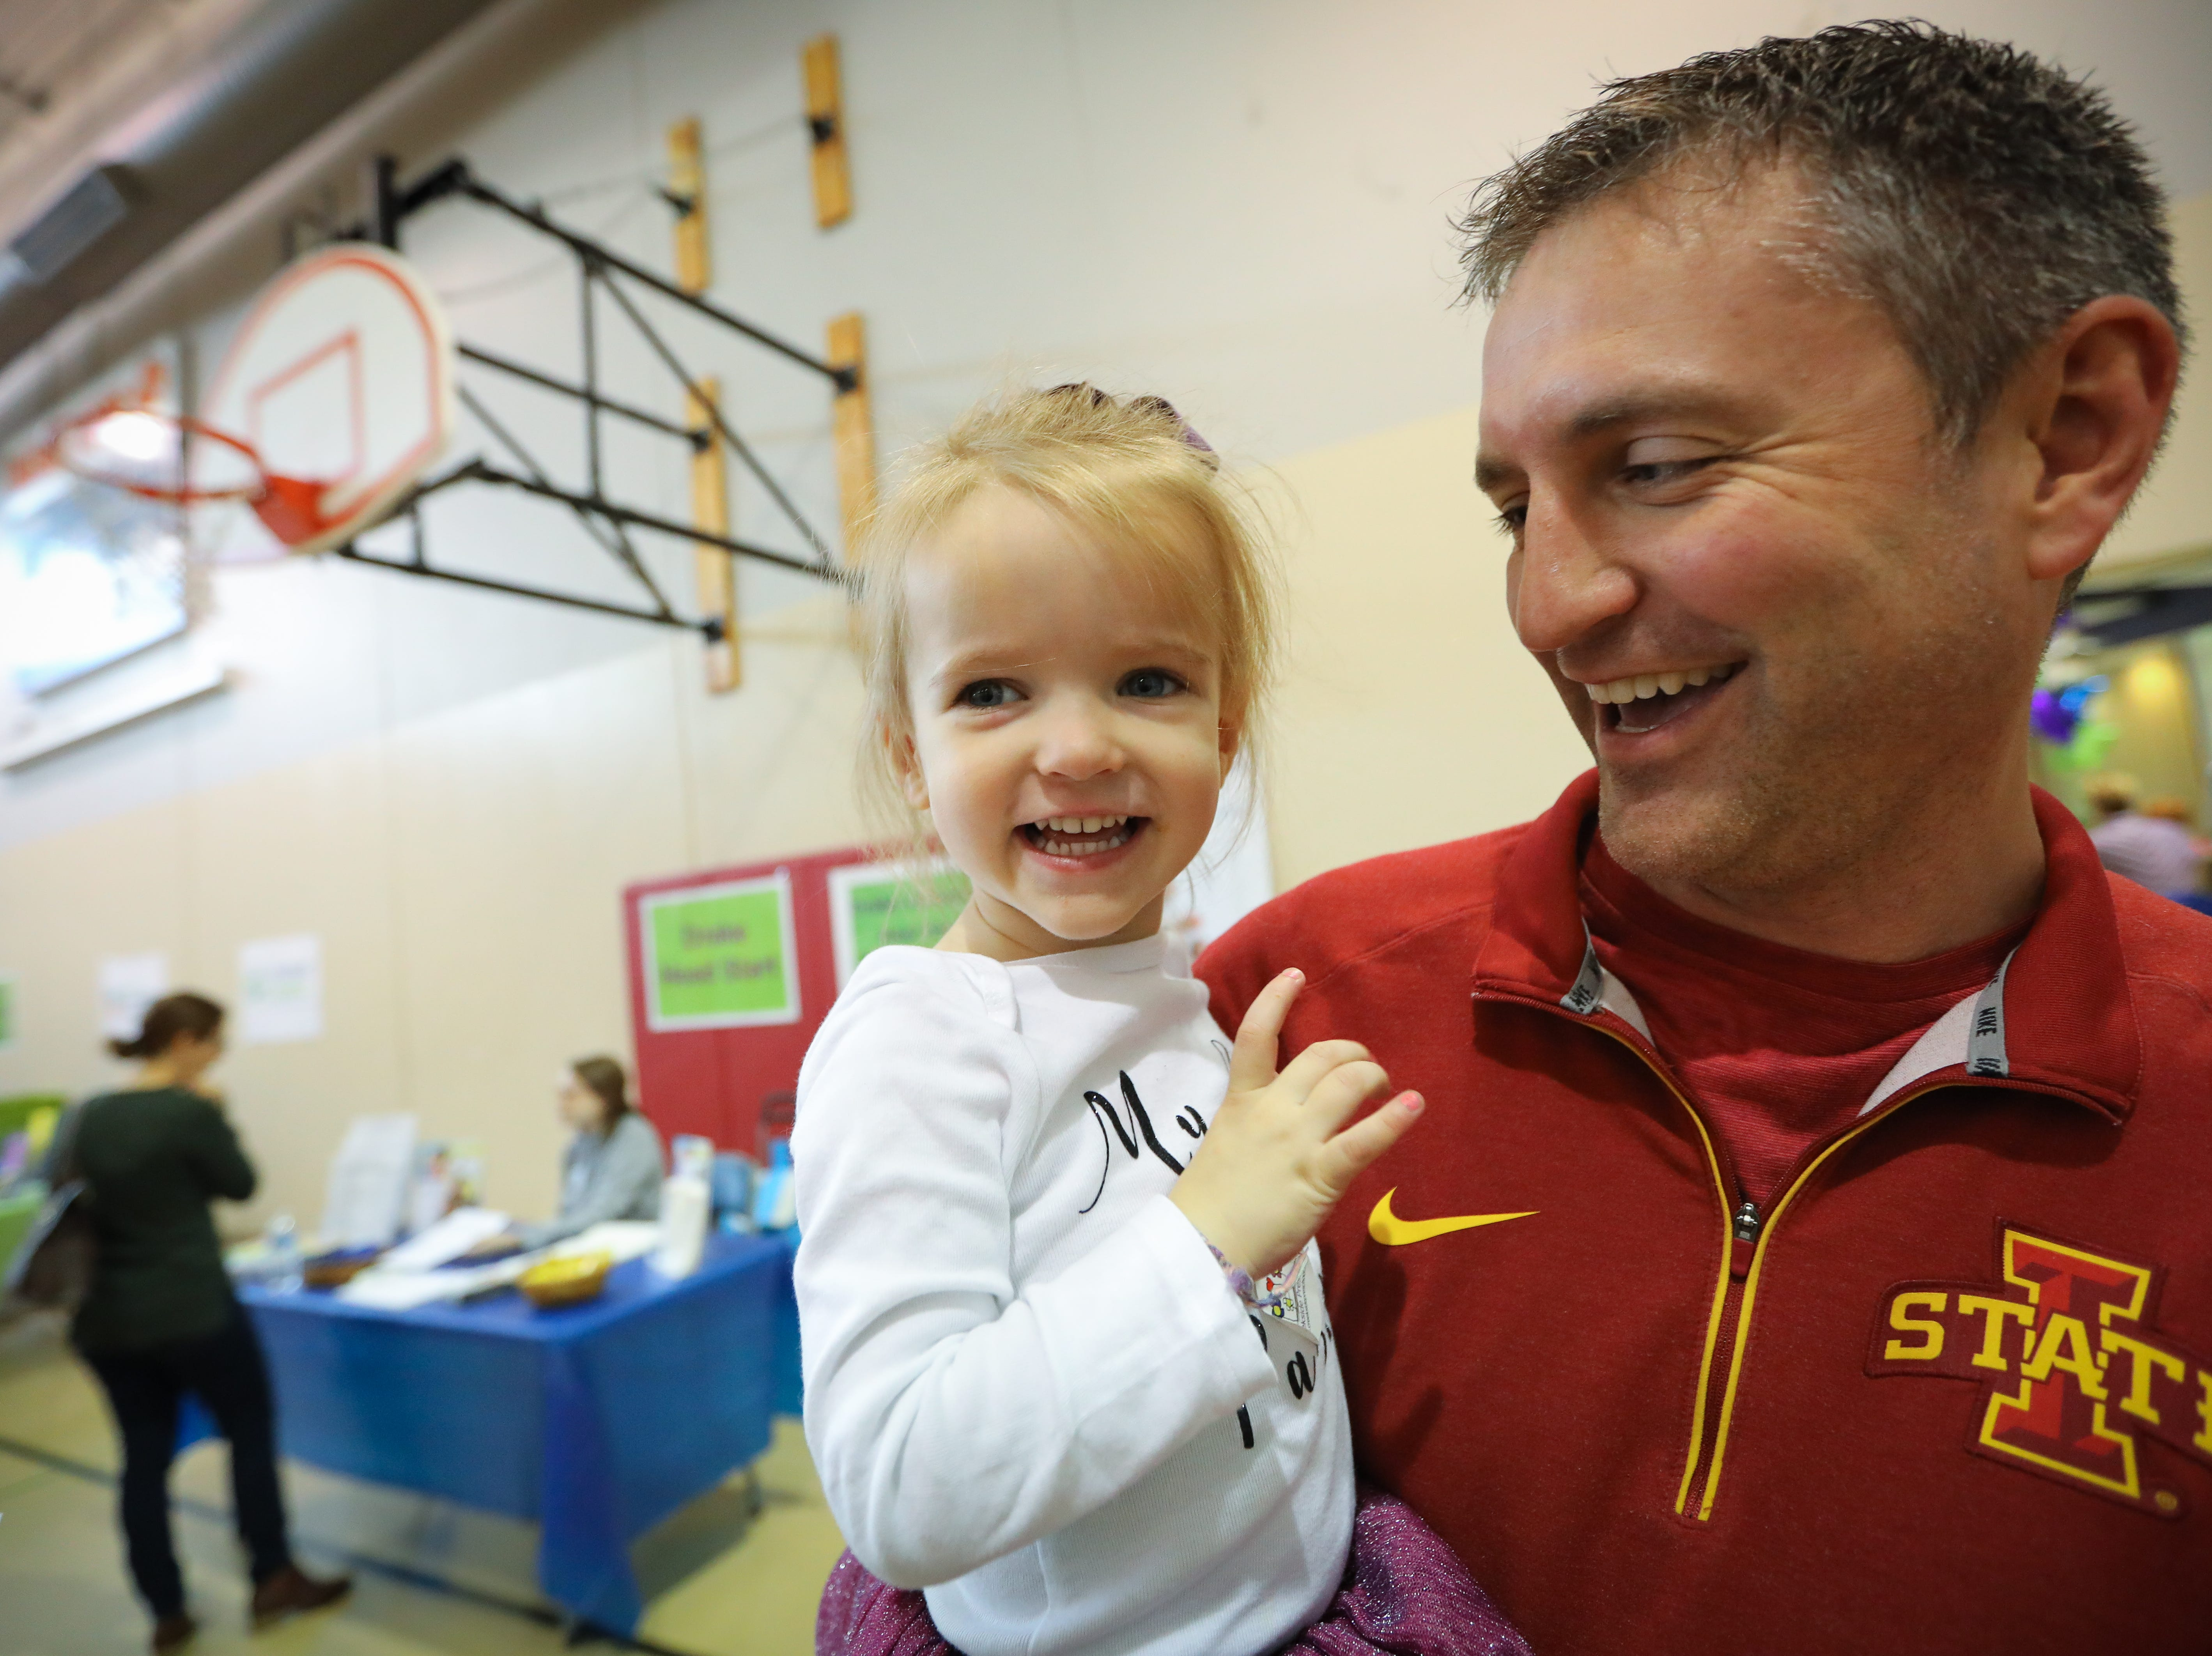 Jayla, 2, of West Des Moines and her father, Jason Vos, participate in the Preschool Palooza at Hillside Elementary School on Saturday, Nov. 3, 2018 in Des Moines, Iowa.